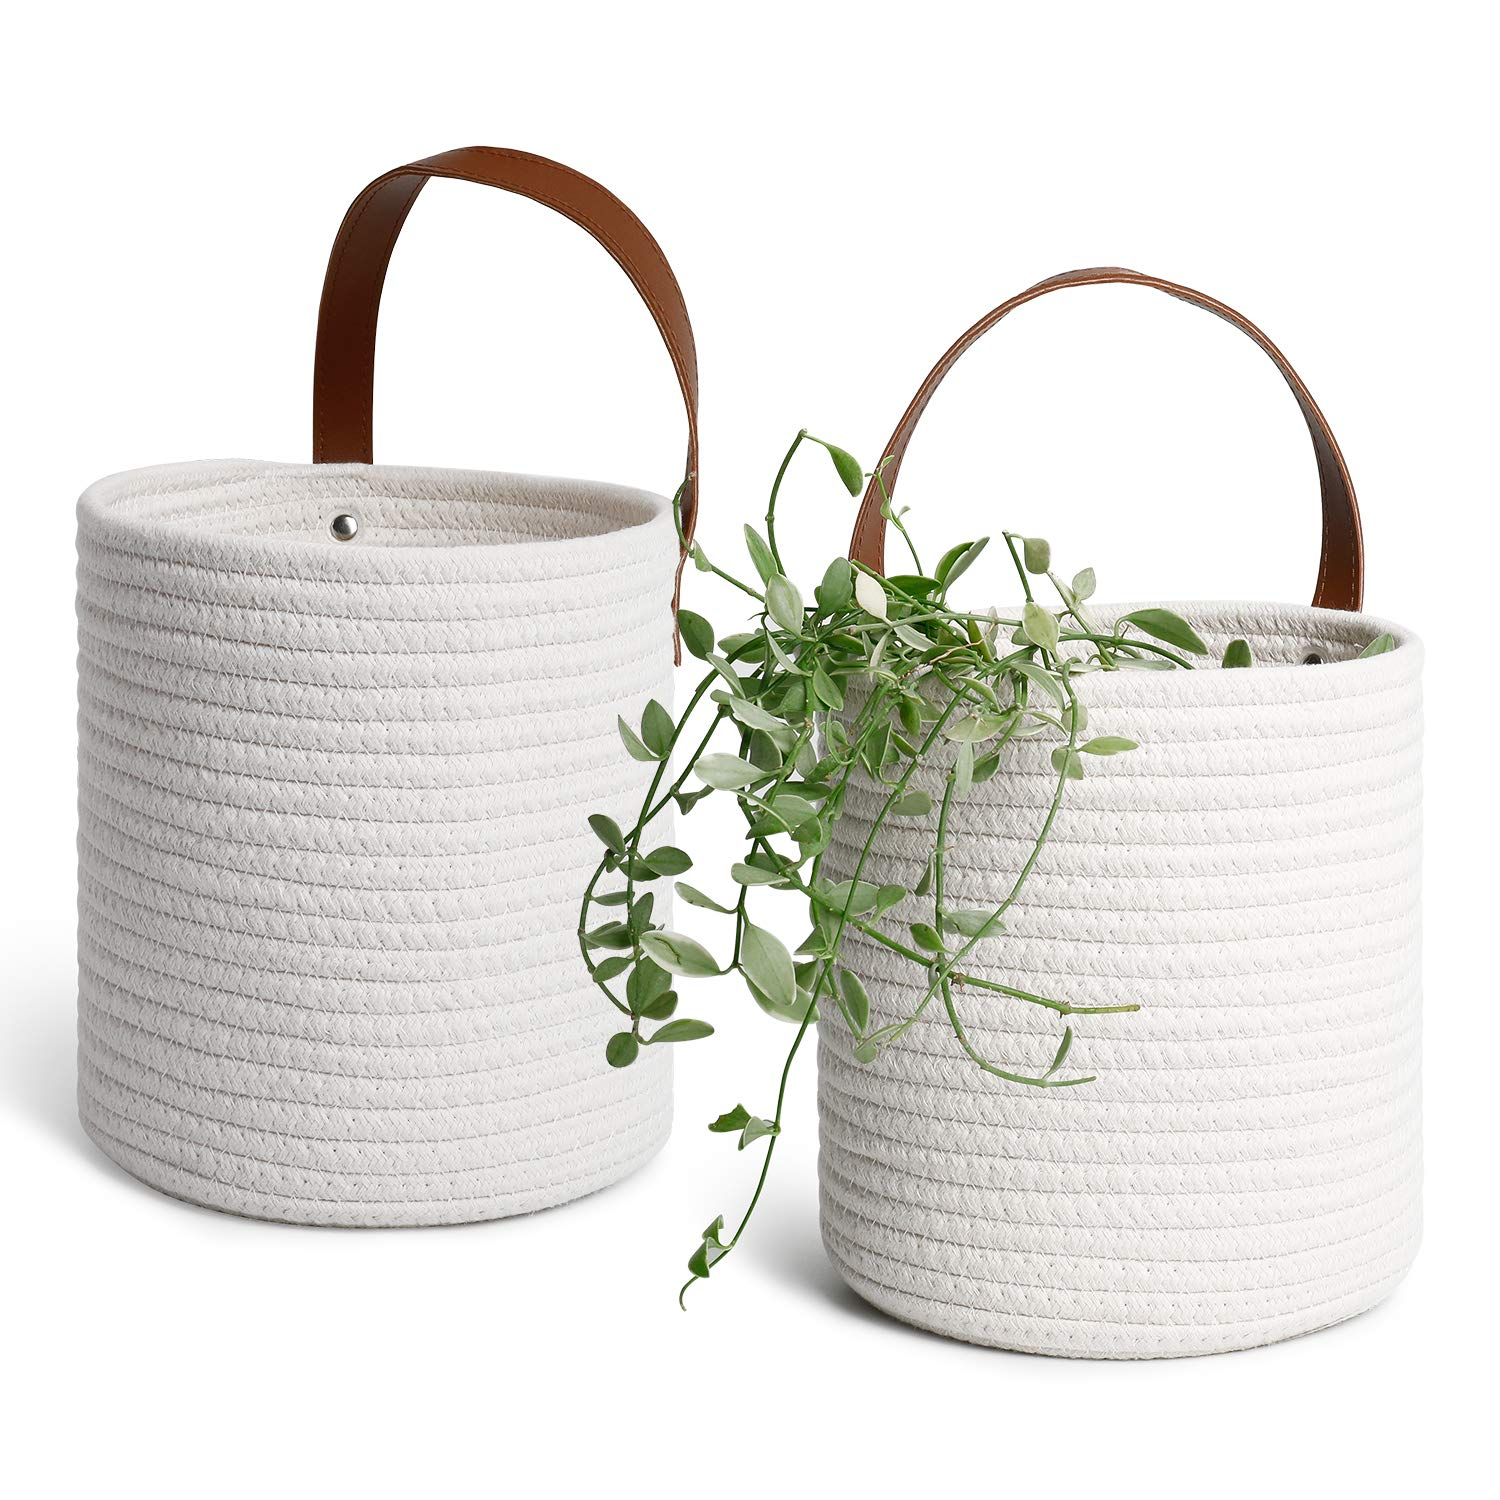 POTEY 710206 2pack Cotton Rope Hanging Baskets – 7.08 x 7.87 Wall